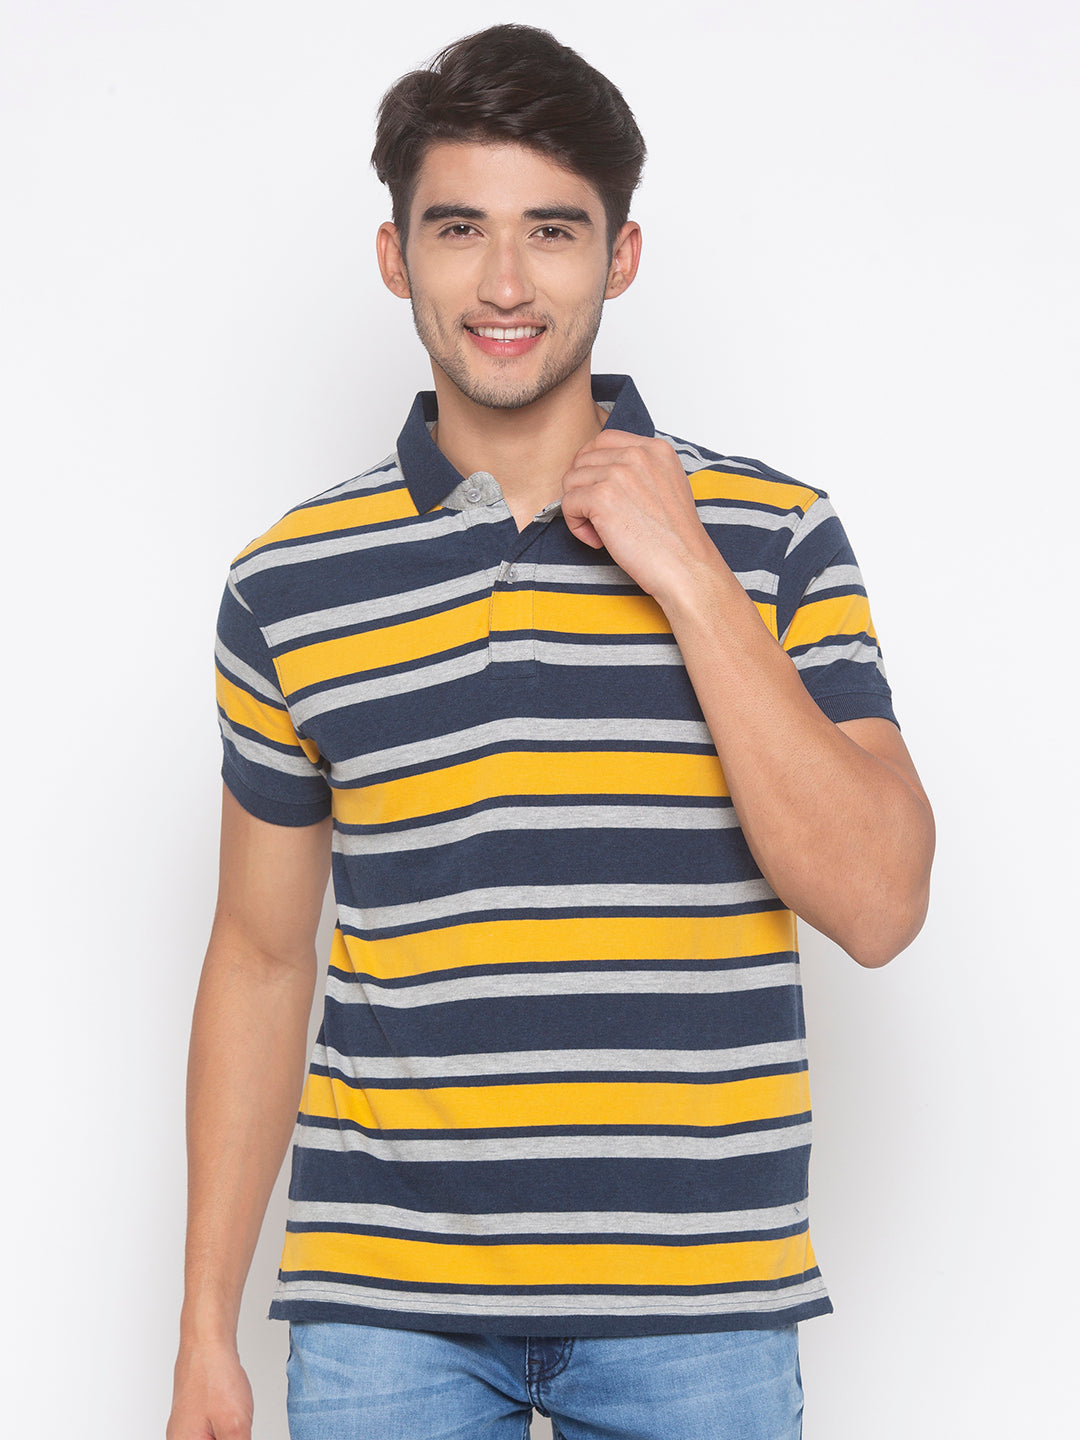 Globus Mustard & Navy Blue Striped T-Shirt-1